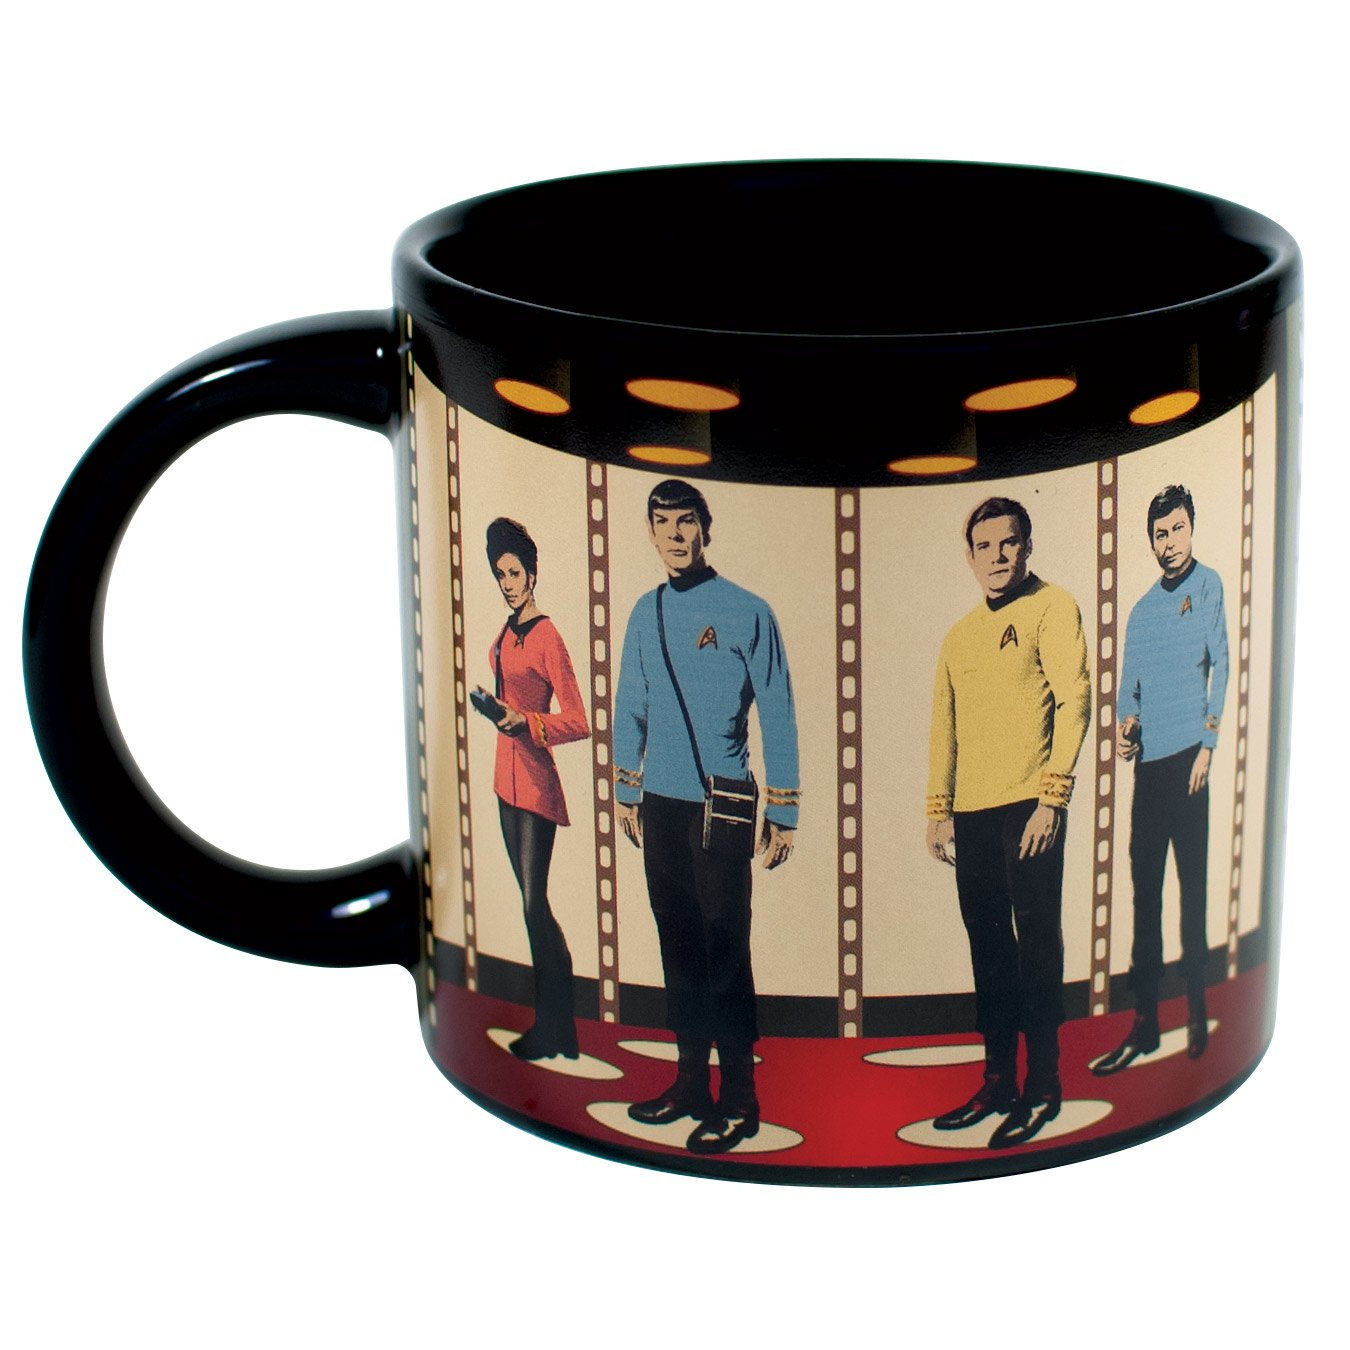 Star Trek Transporter Heat Changing Mug - Add Coffee or Tea and Kirk, Spock, McCoy and Uhura Appear on the Planet's Surface - Comes in a Fun Gift Box